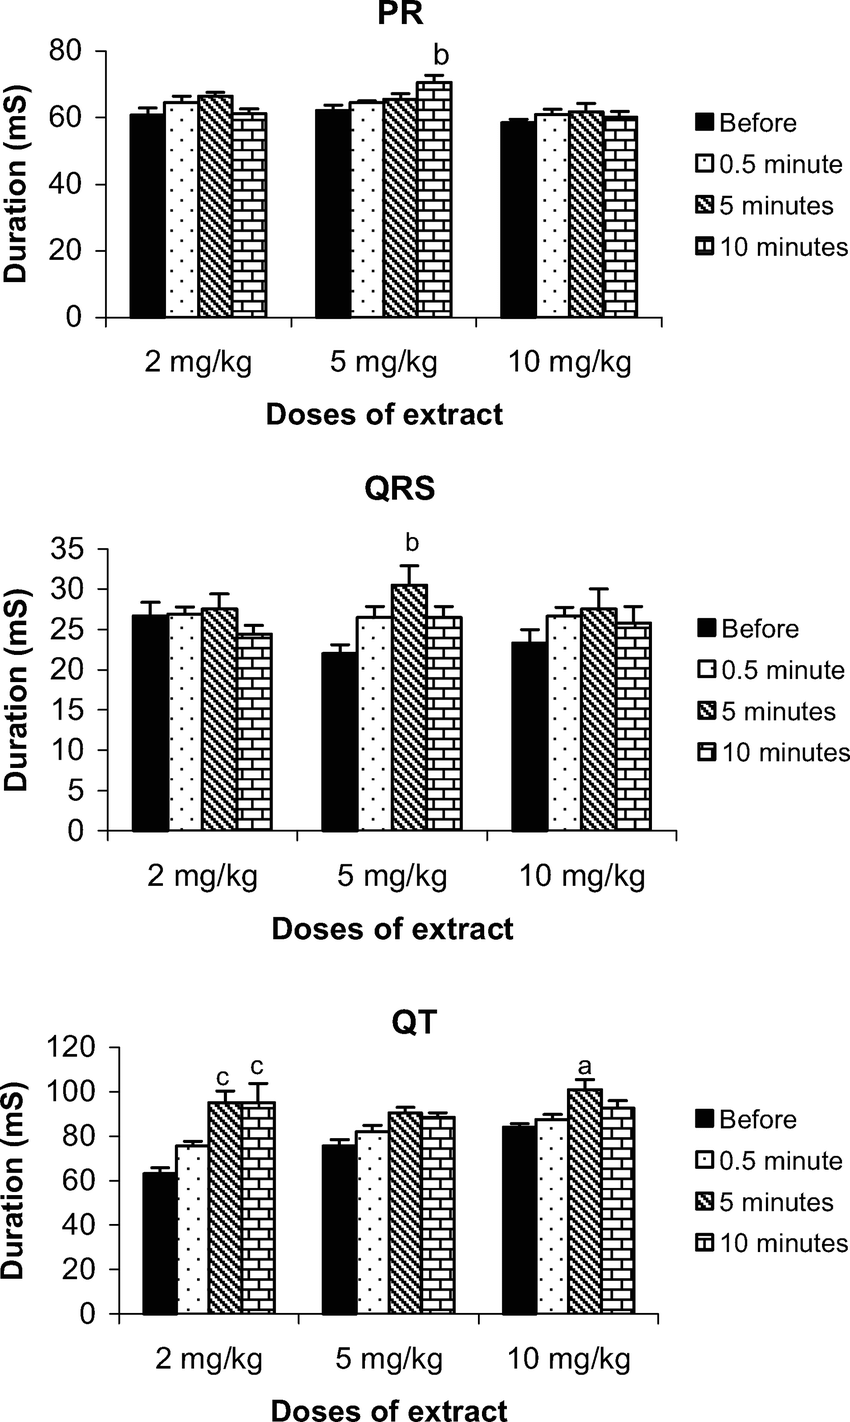 Time-dependent effects of different doses of the n-butanol